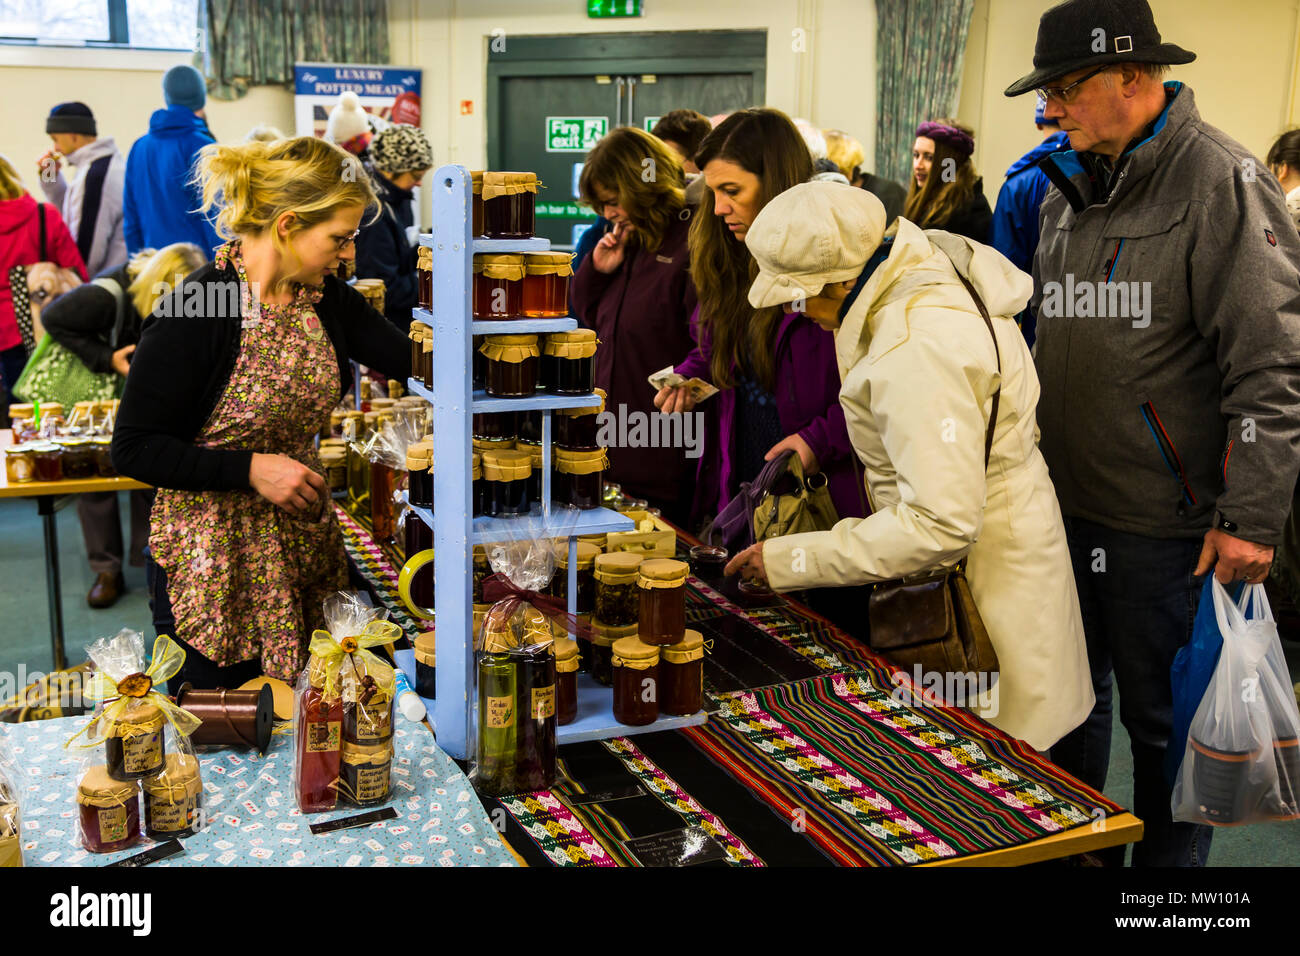 Home made jams, pickles, curds and chutneys on sale on a market stall. - Stock Image